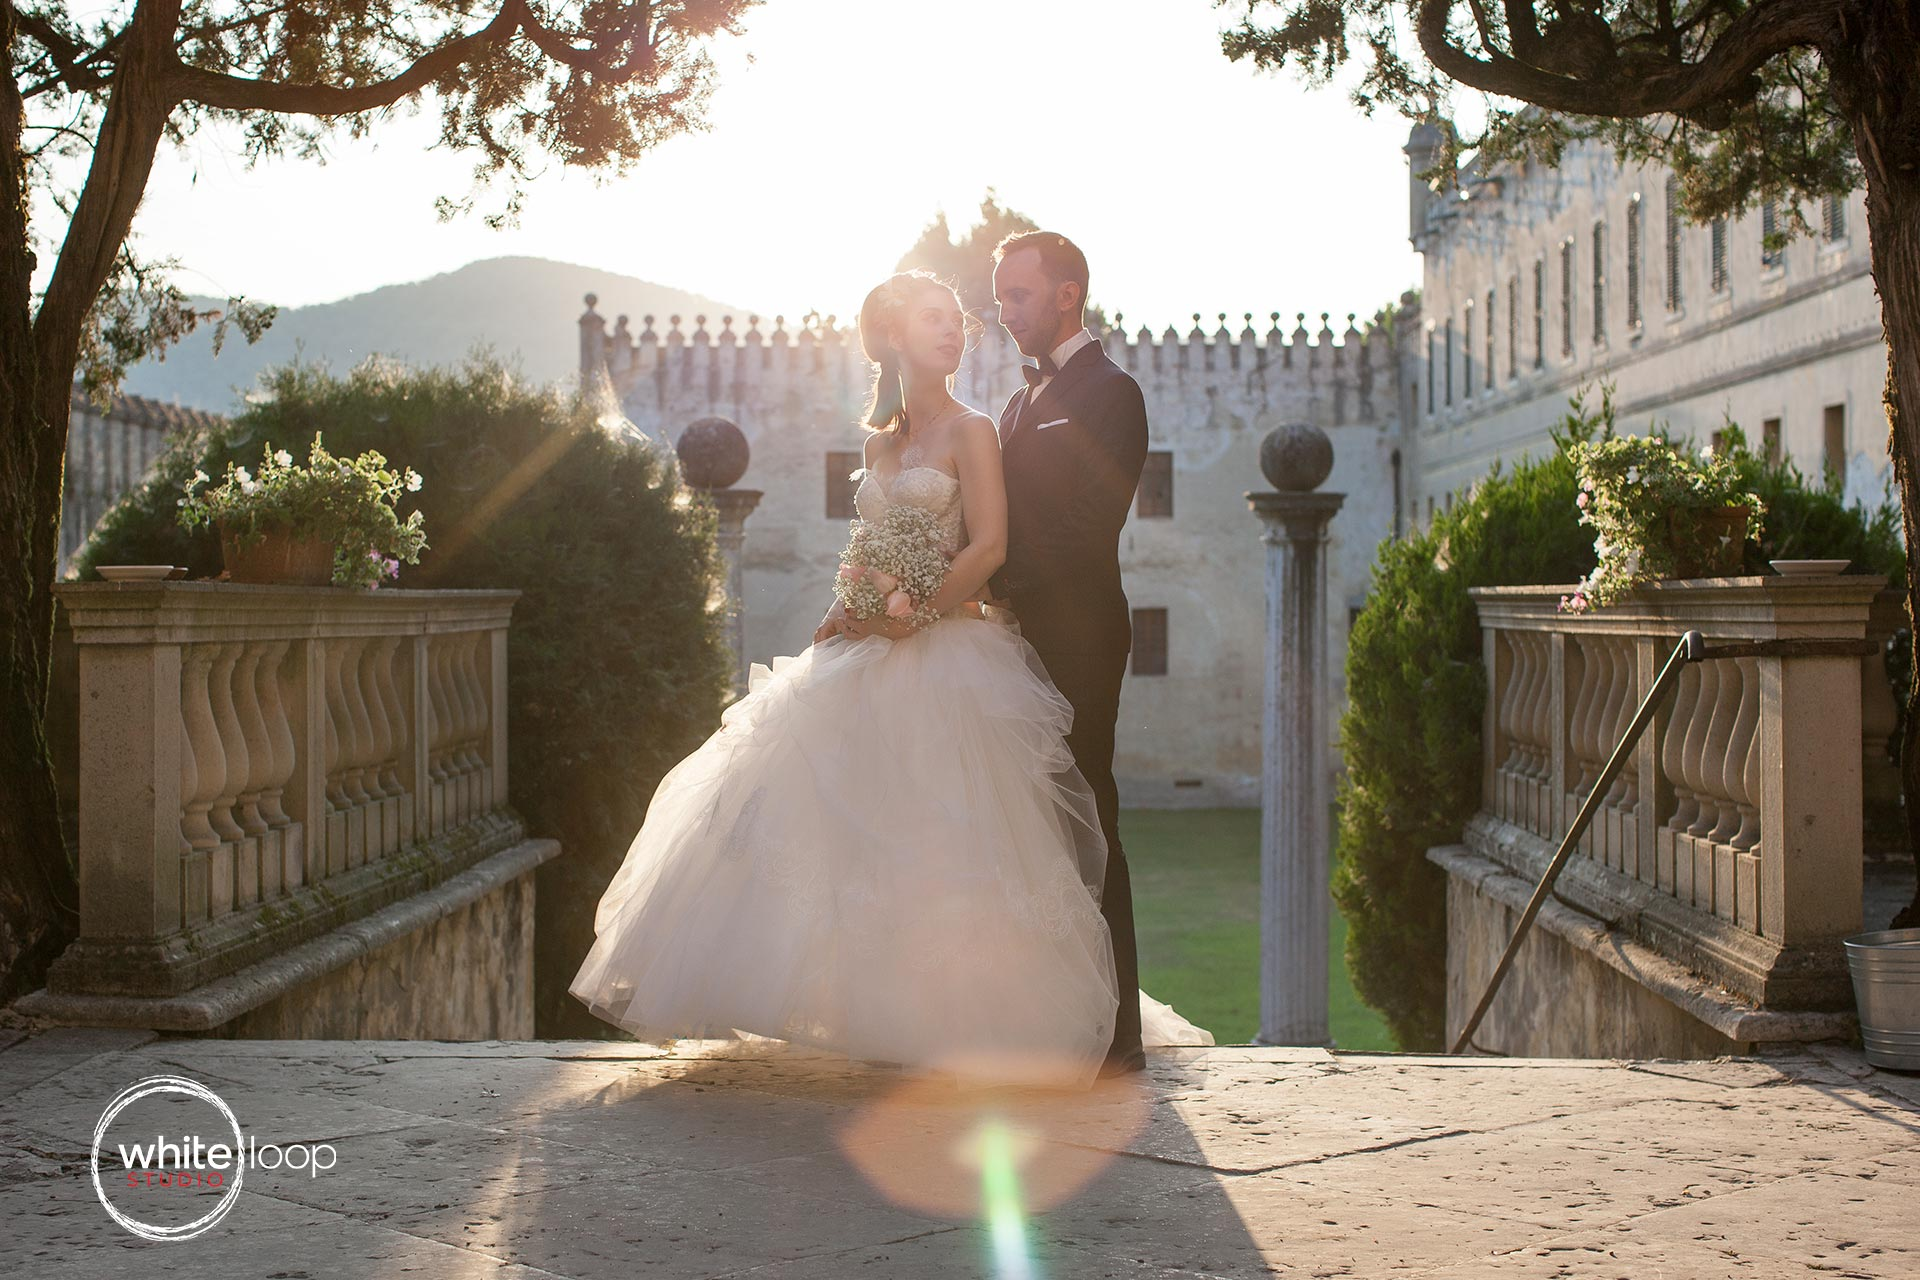 The bride and groom are holding each other in the stairs of the beautiful ancient castle, with a natural backlight.